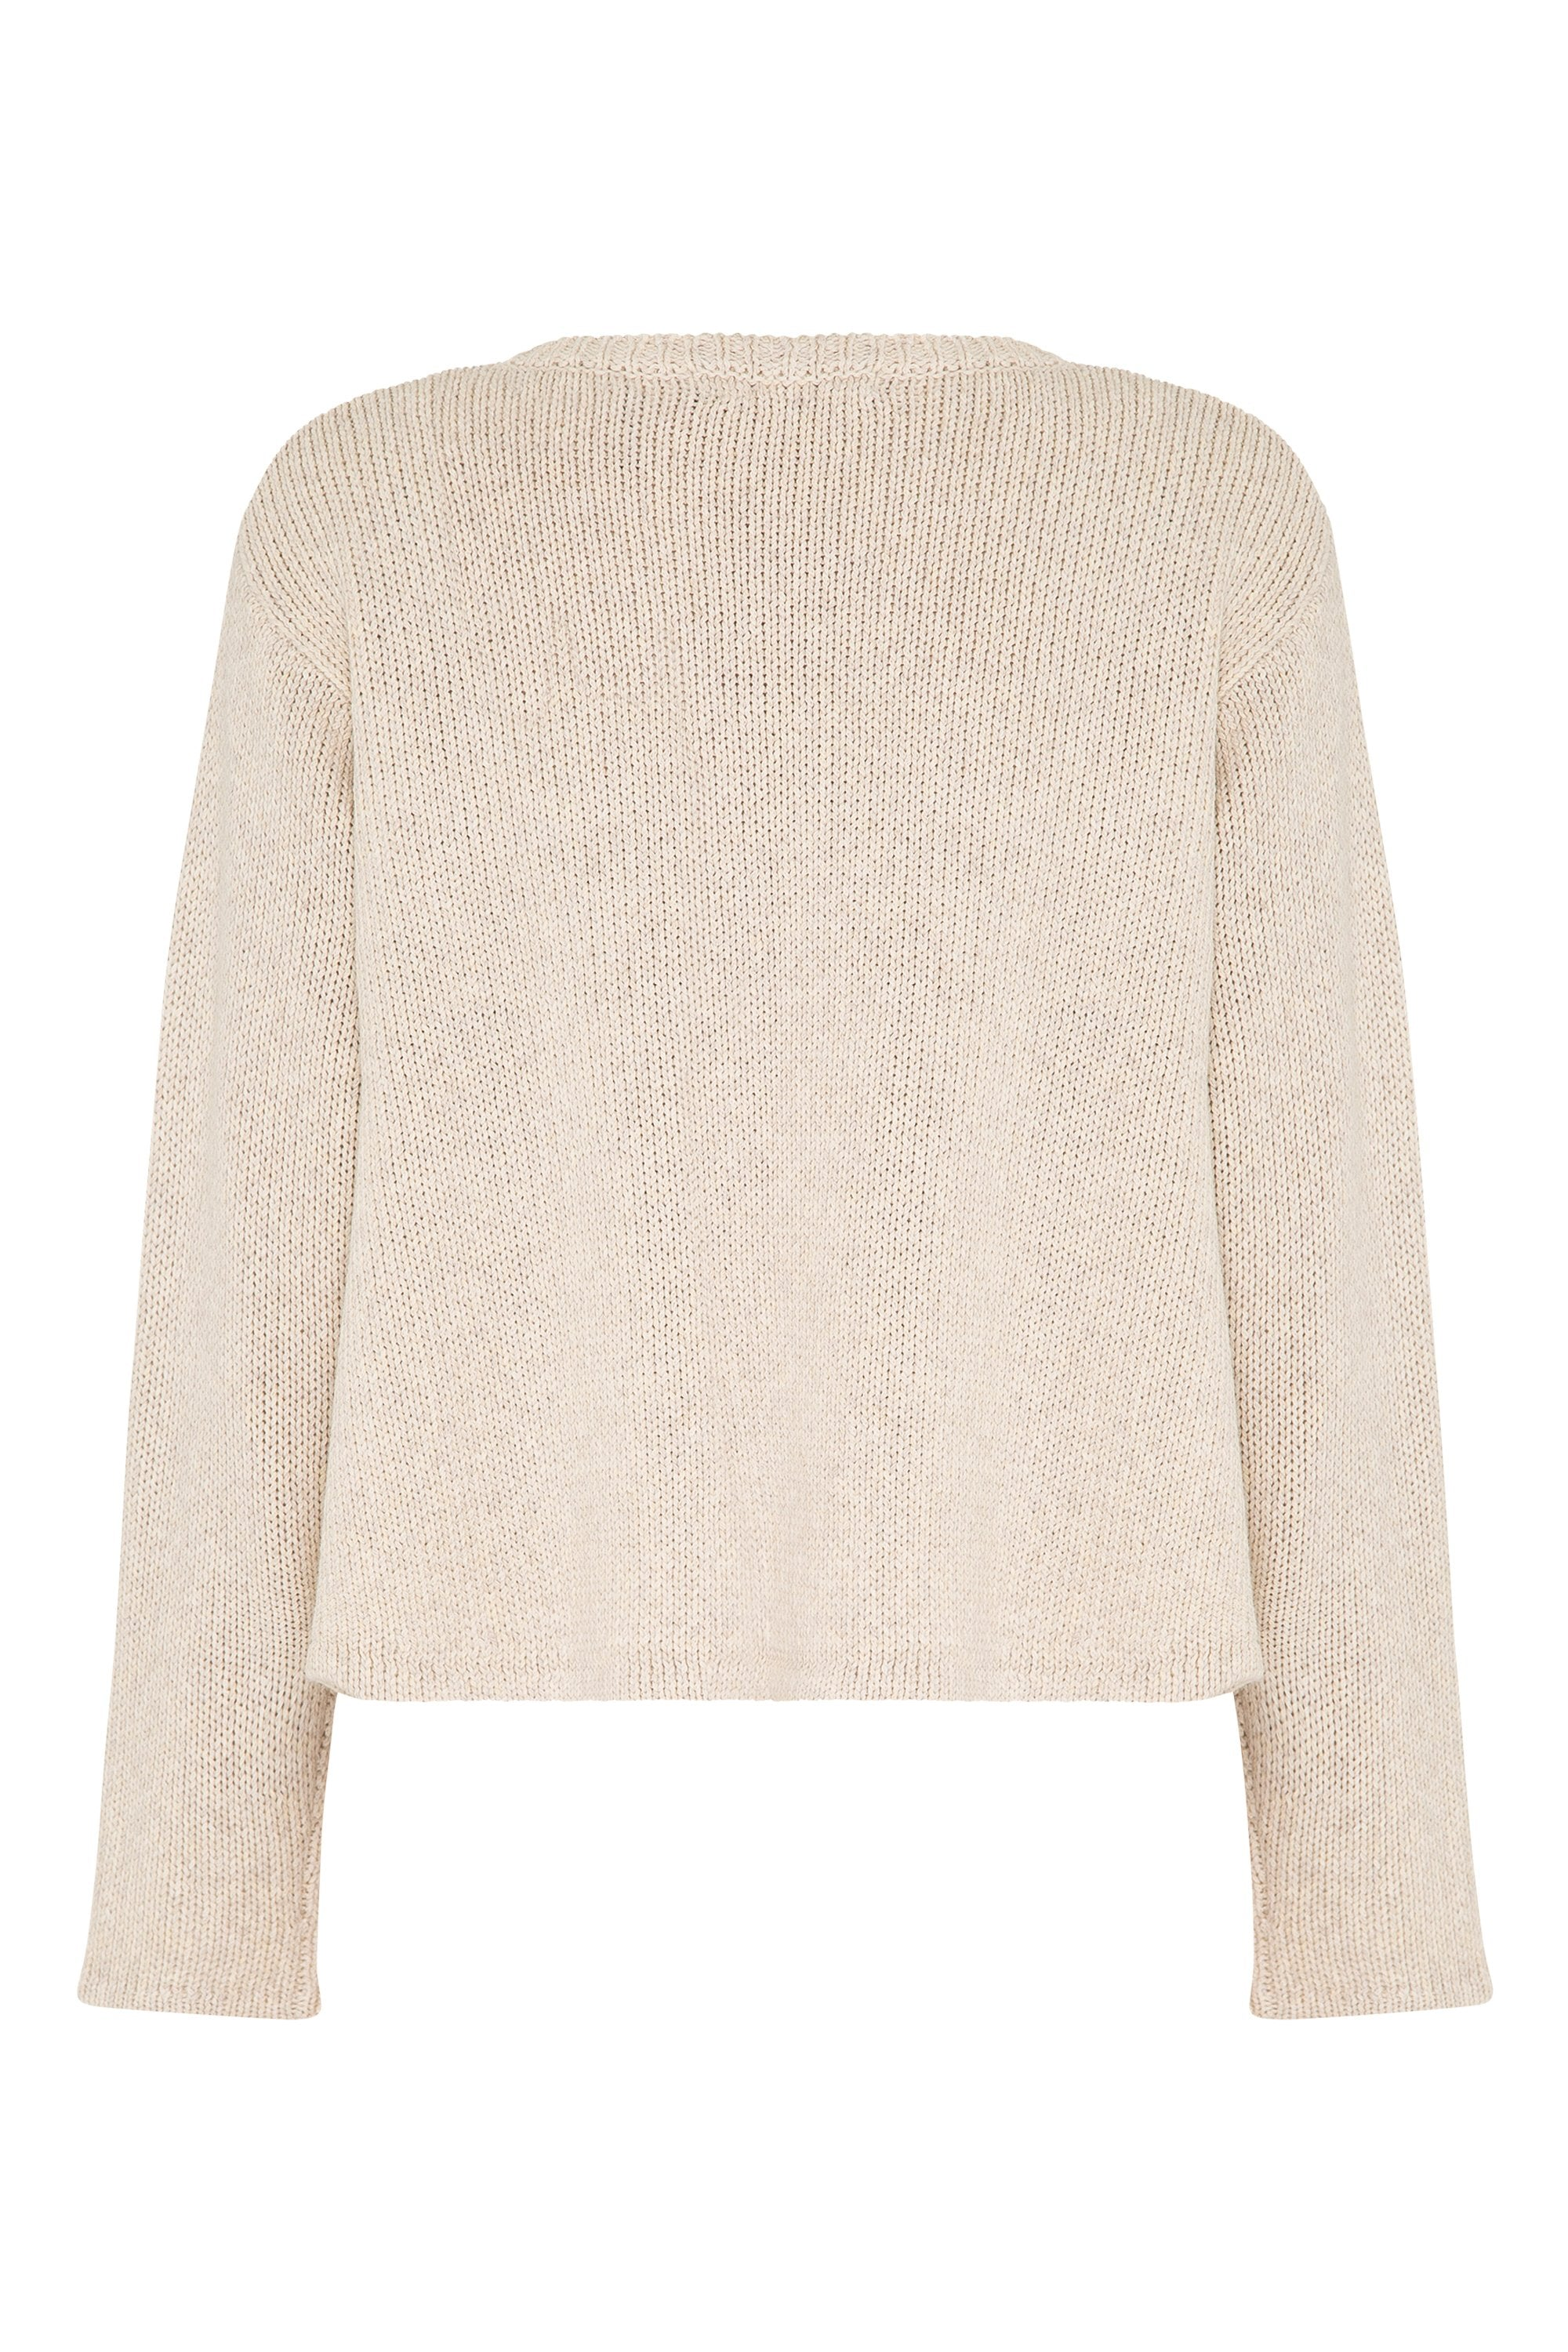 May Knit Jumper In Natural